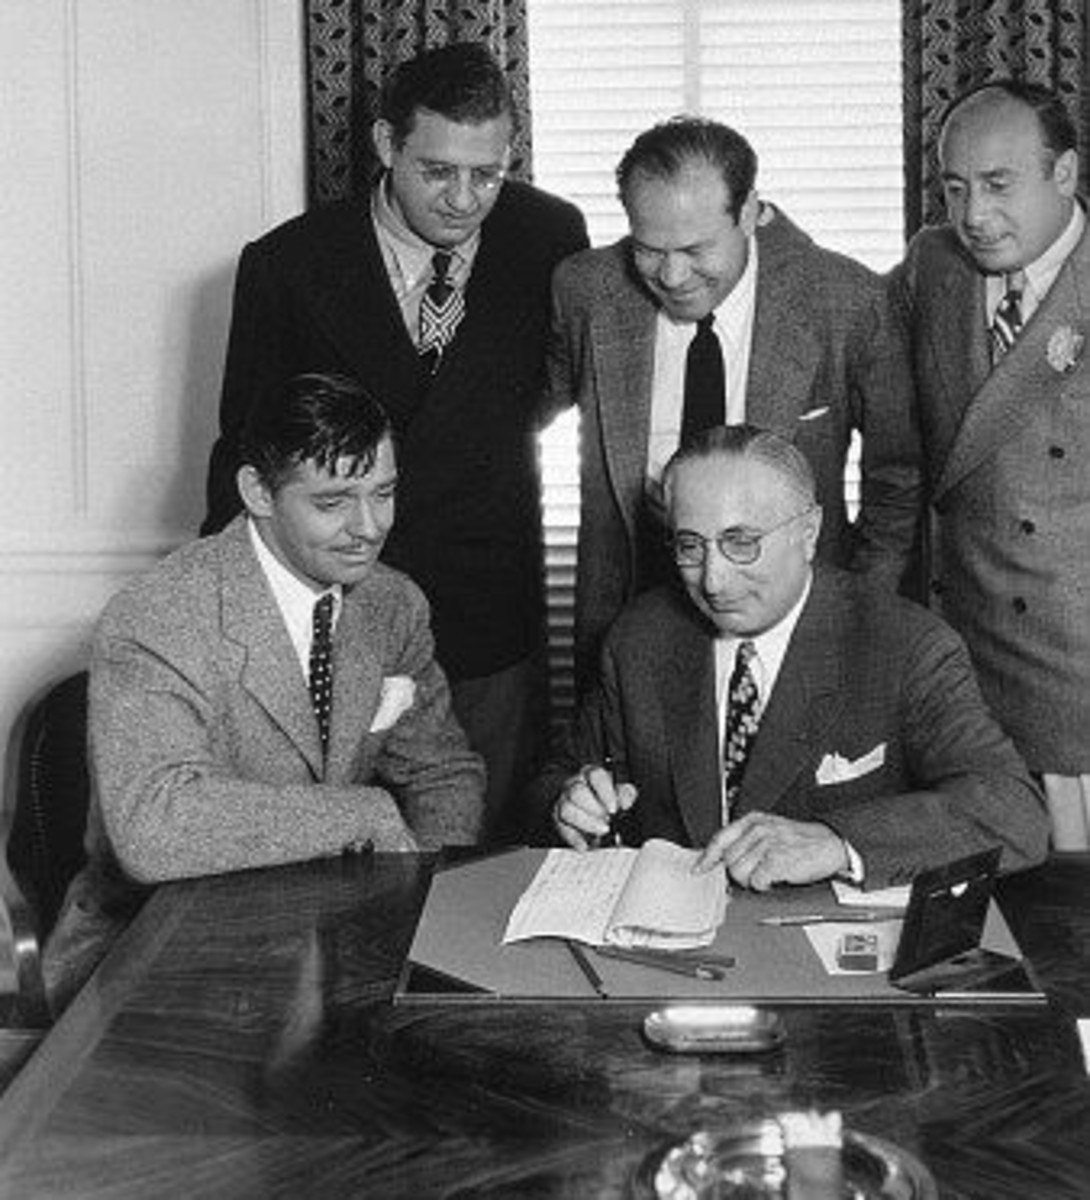 Clark Gable and Mayer seated, Selznick behind Gable